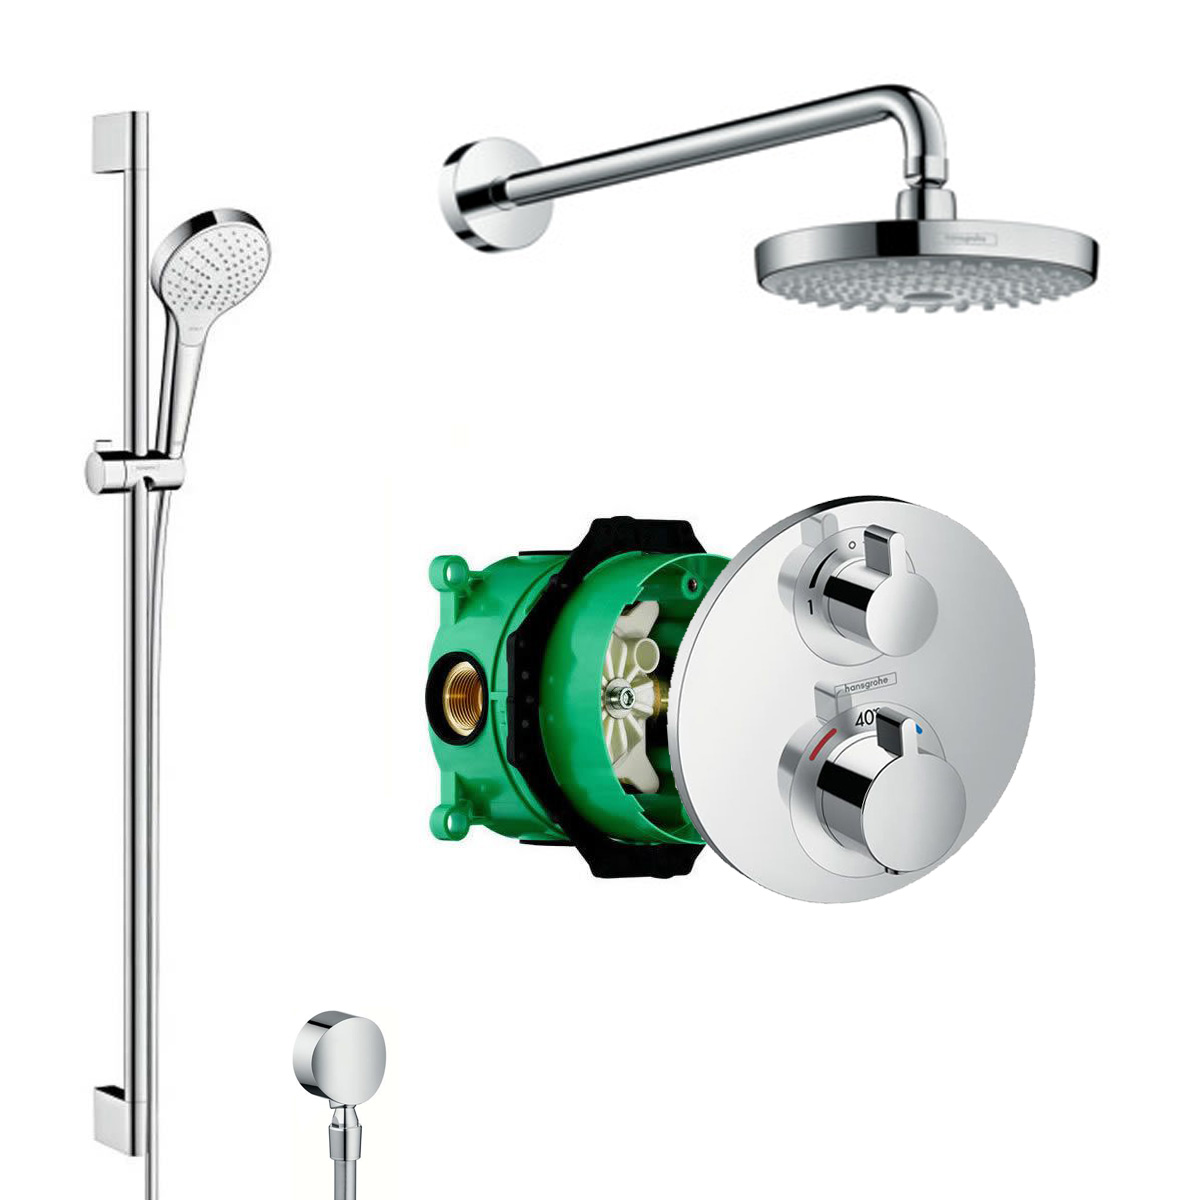 Hansgrohe | Ecostat S | 88101001 | Complete Valves & Kits